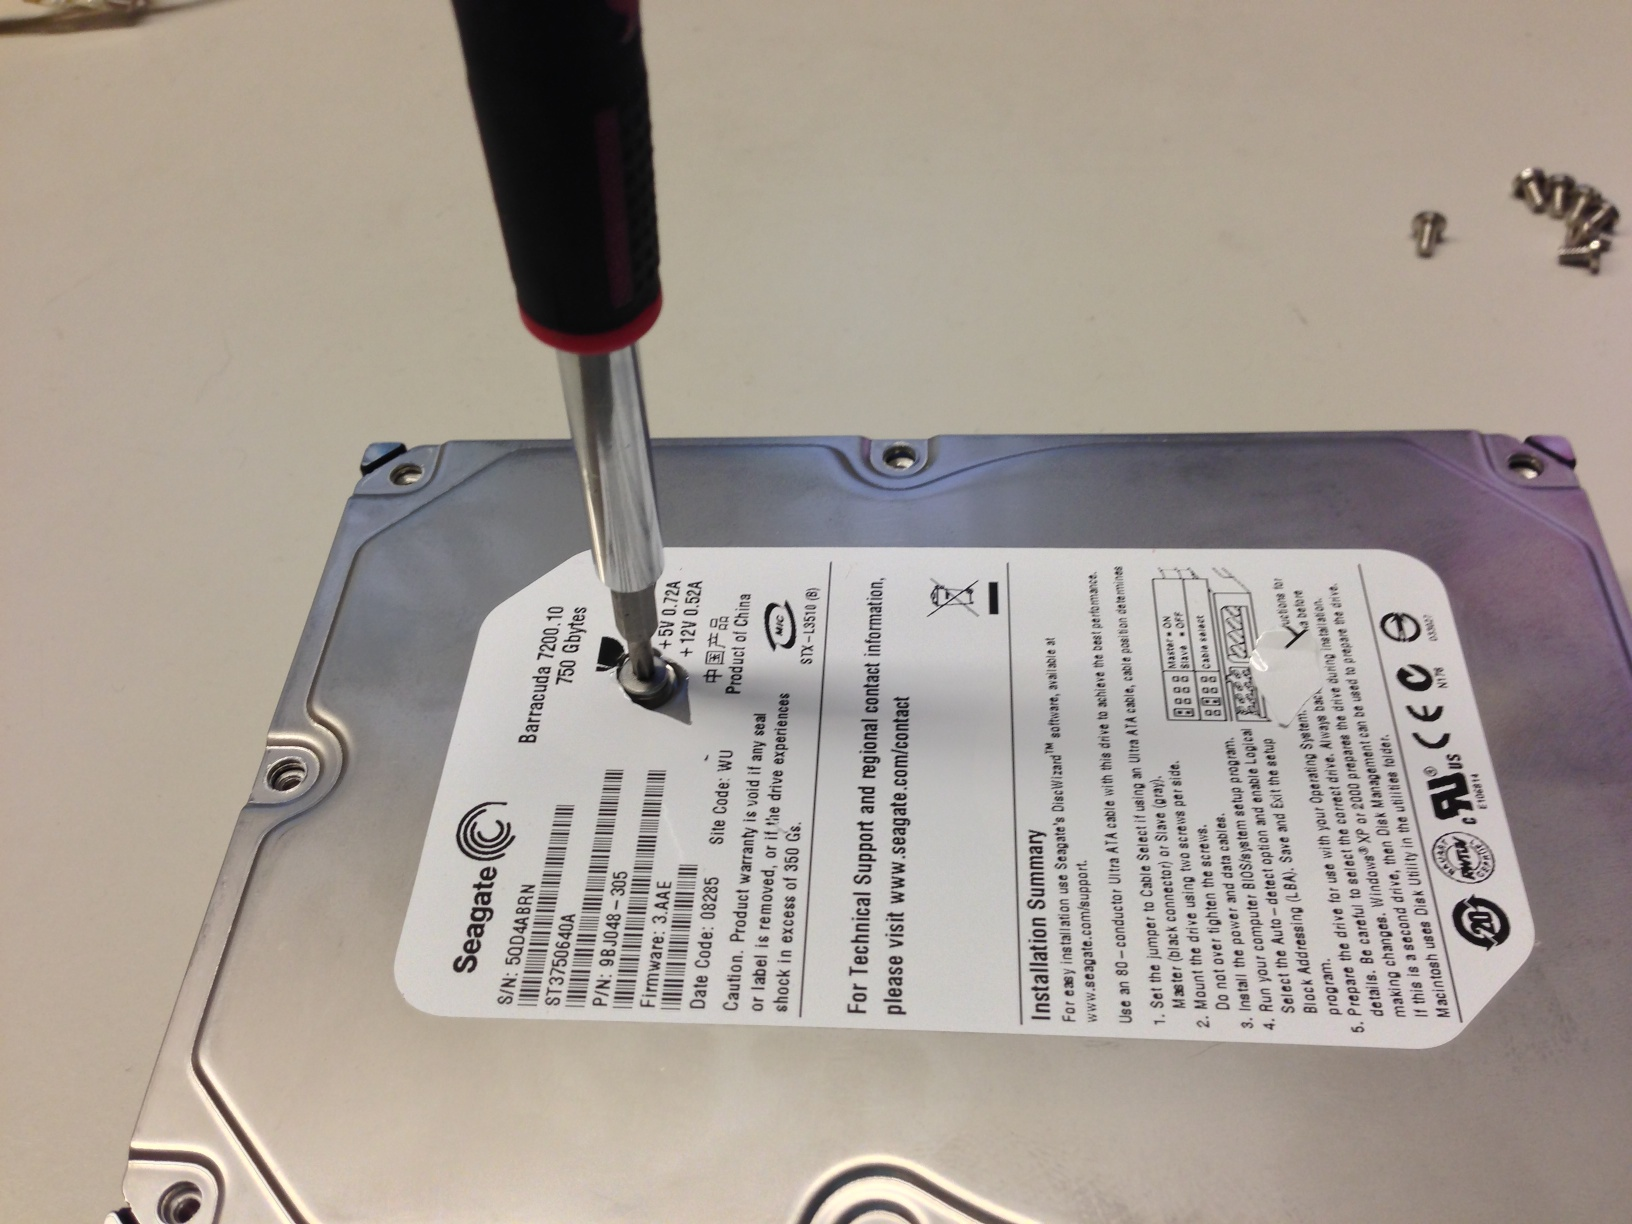 Take Apart a Hard Drive for Craft Parts - Sew What, Sherlock?